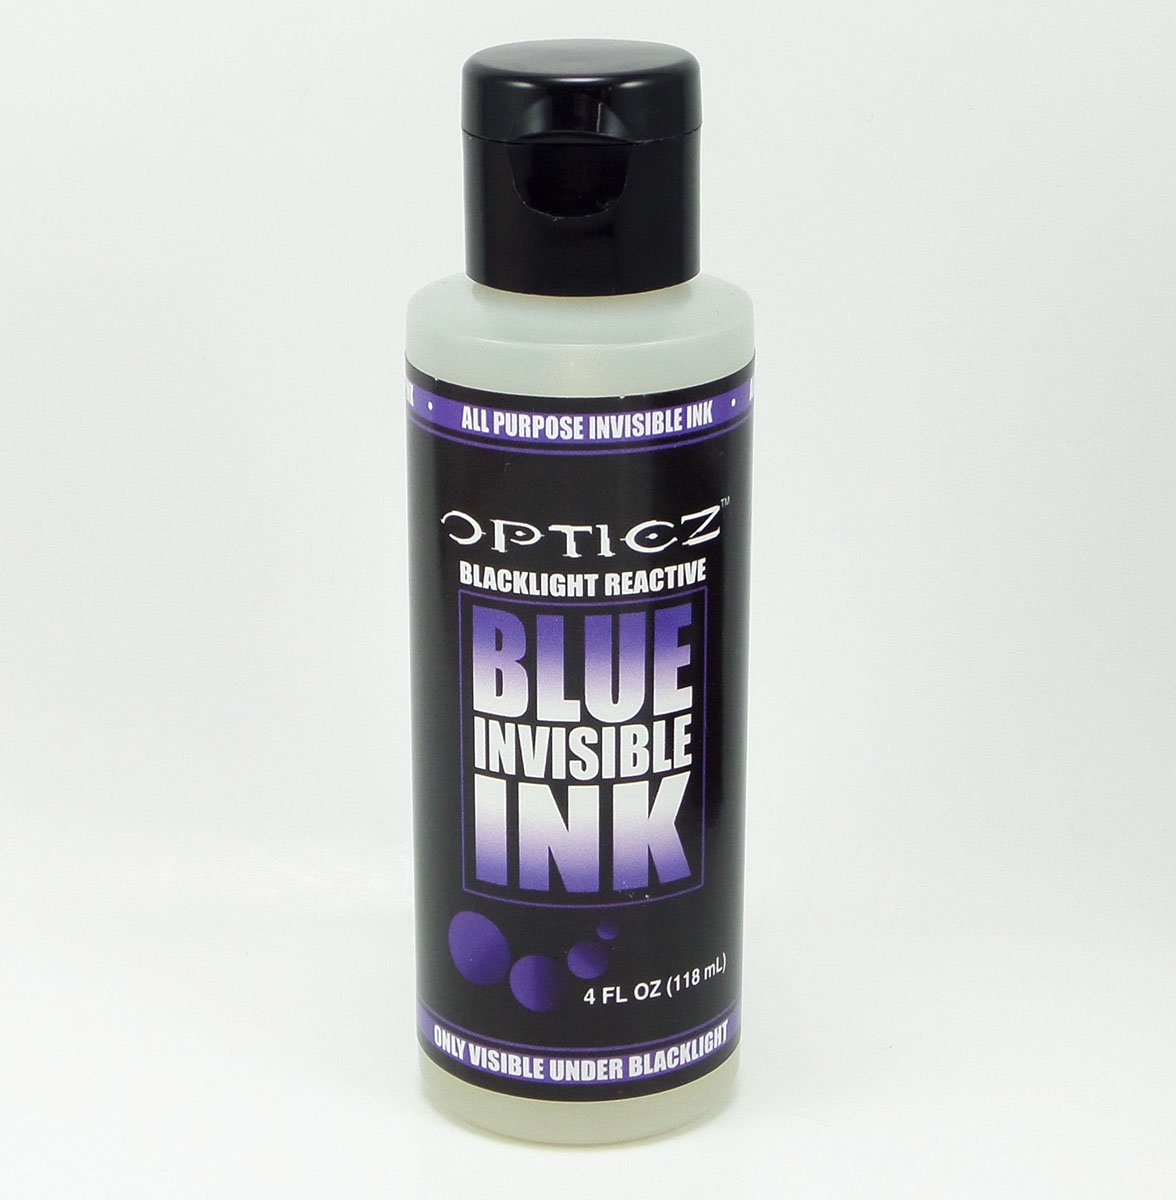 Opticz All Purpose Invisible Blue UV Blacklight Reactive Ink (4 Ounce Bottle) by Opticz (Image #3)